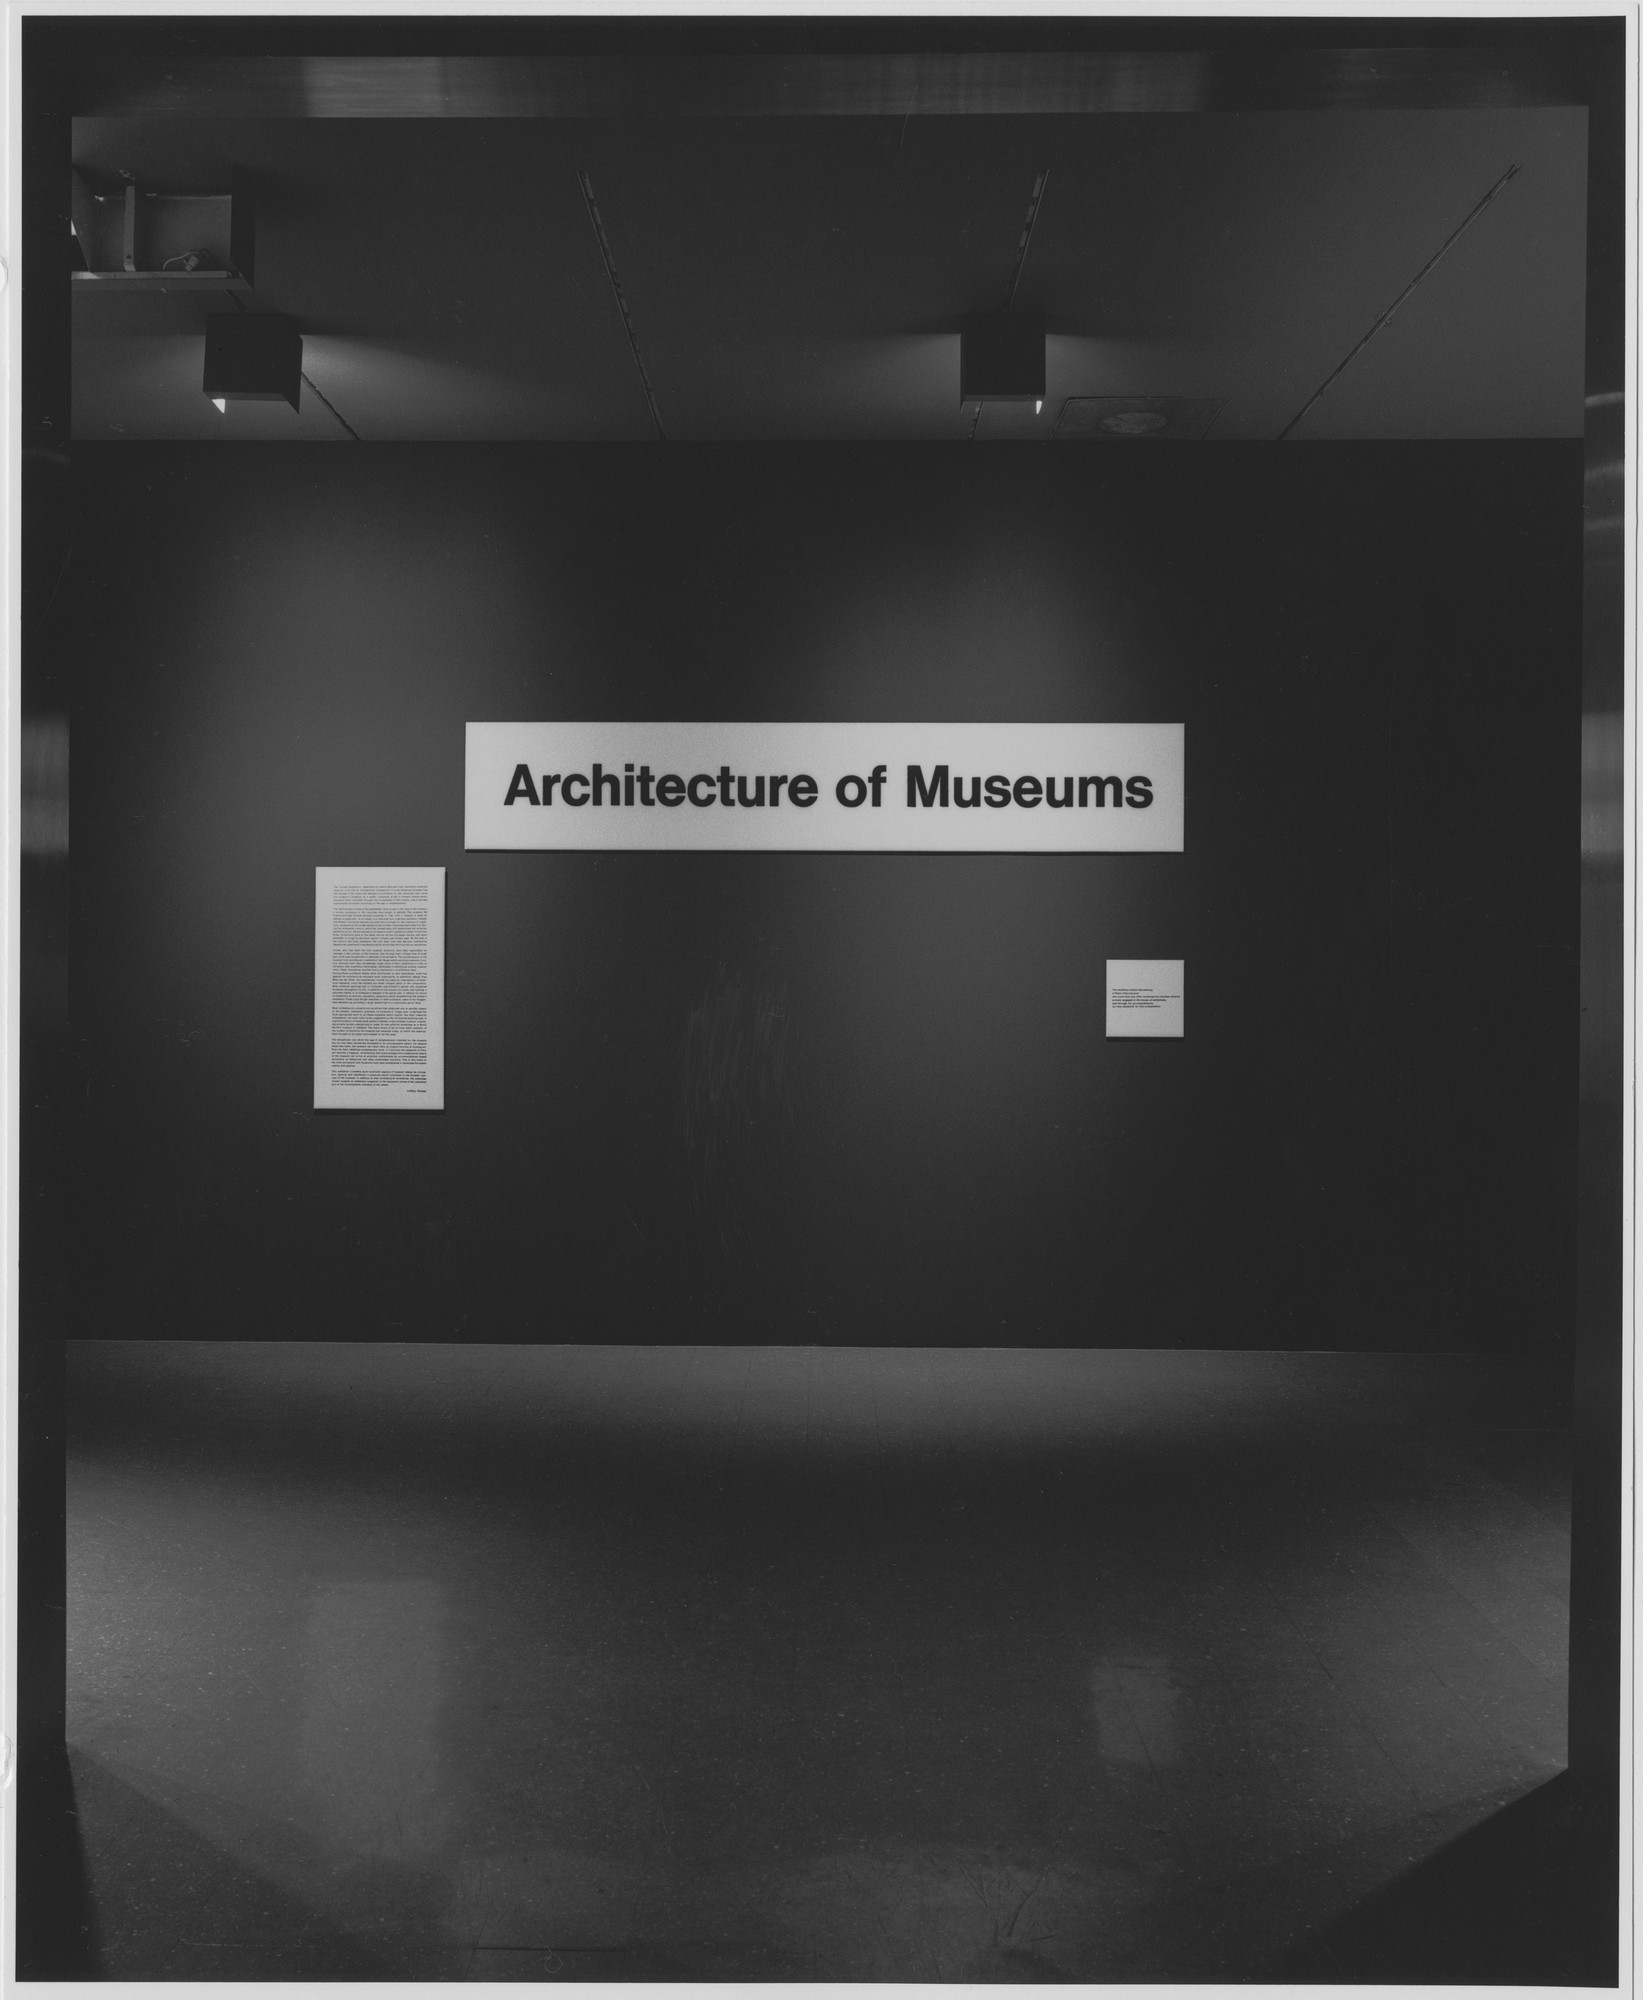 "Installation view of the exhibition, ""Architecture of Museums."" September 25, 1968–November 11, 1968. Photographic Archive. The Museum of Modern Art Archives, New York. IN867.1. Photograph by George Cserna."